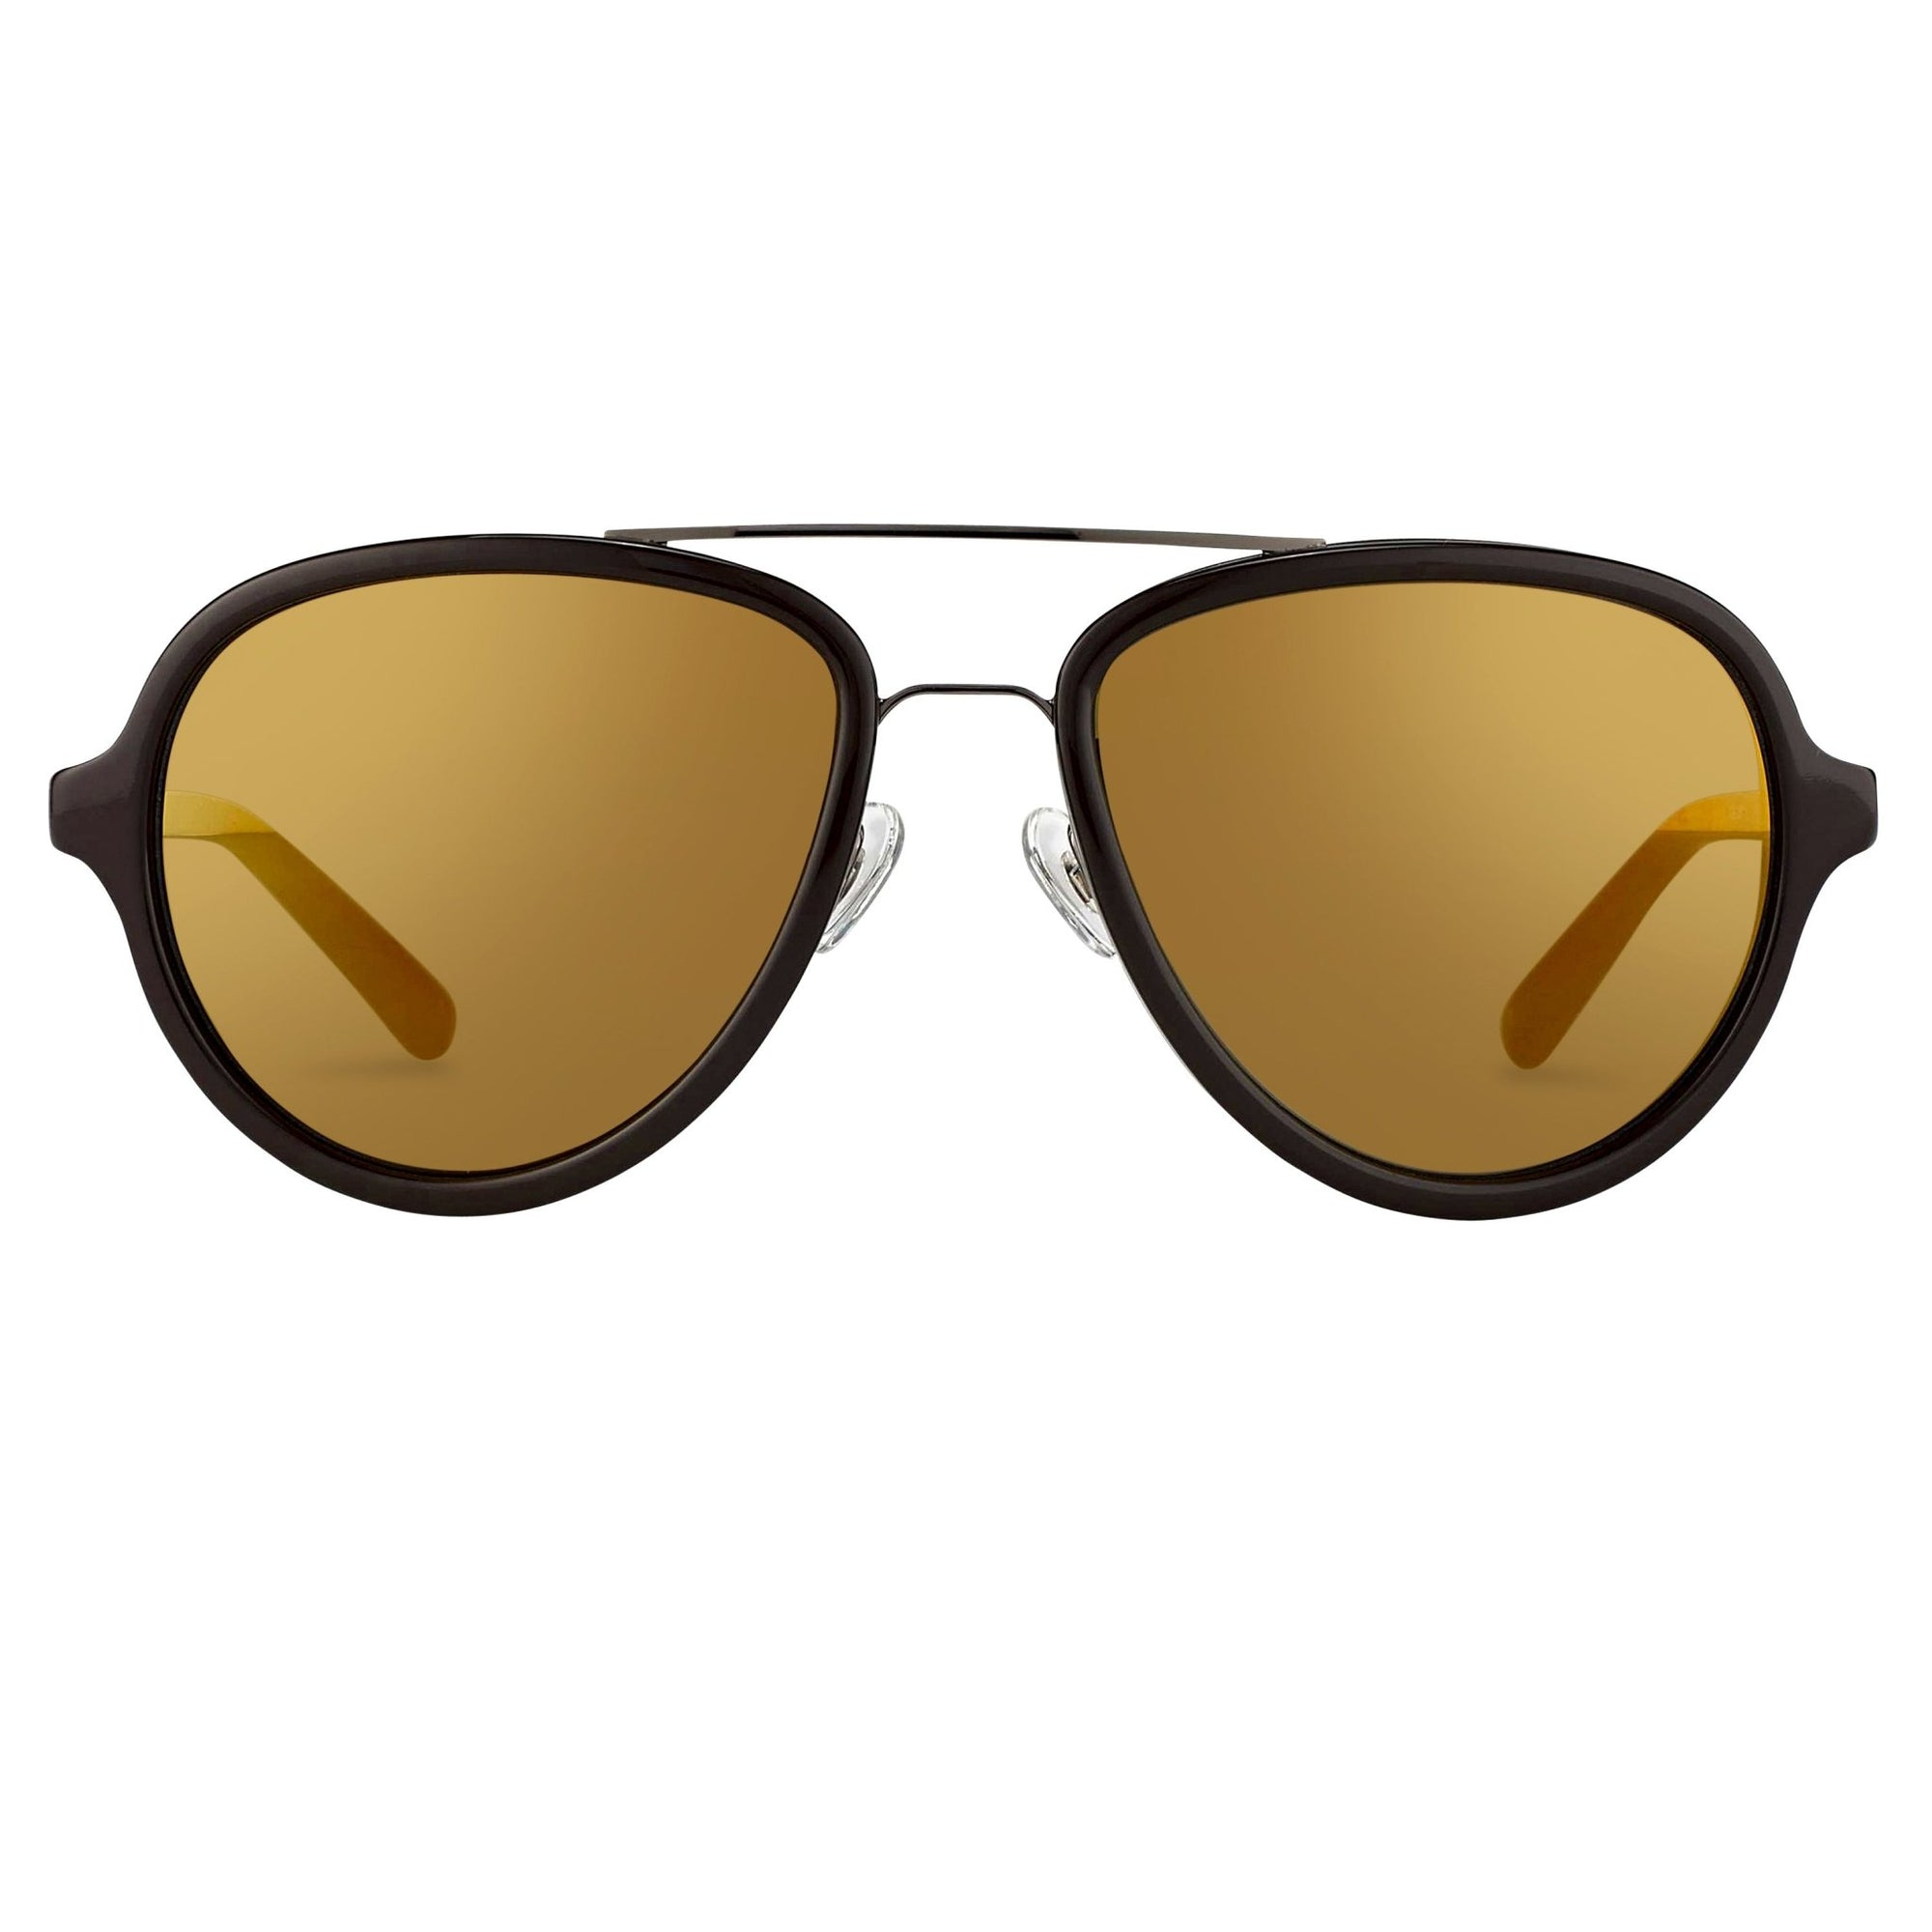 Phillip Lim Sunglasses Brown Gunmetal and Bronze Mirror Lenses Category 3 - PL16C20SUN - Watches & Crystals